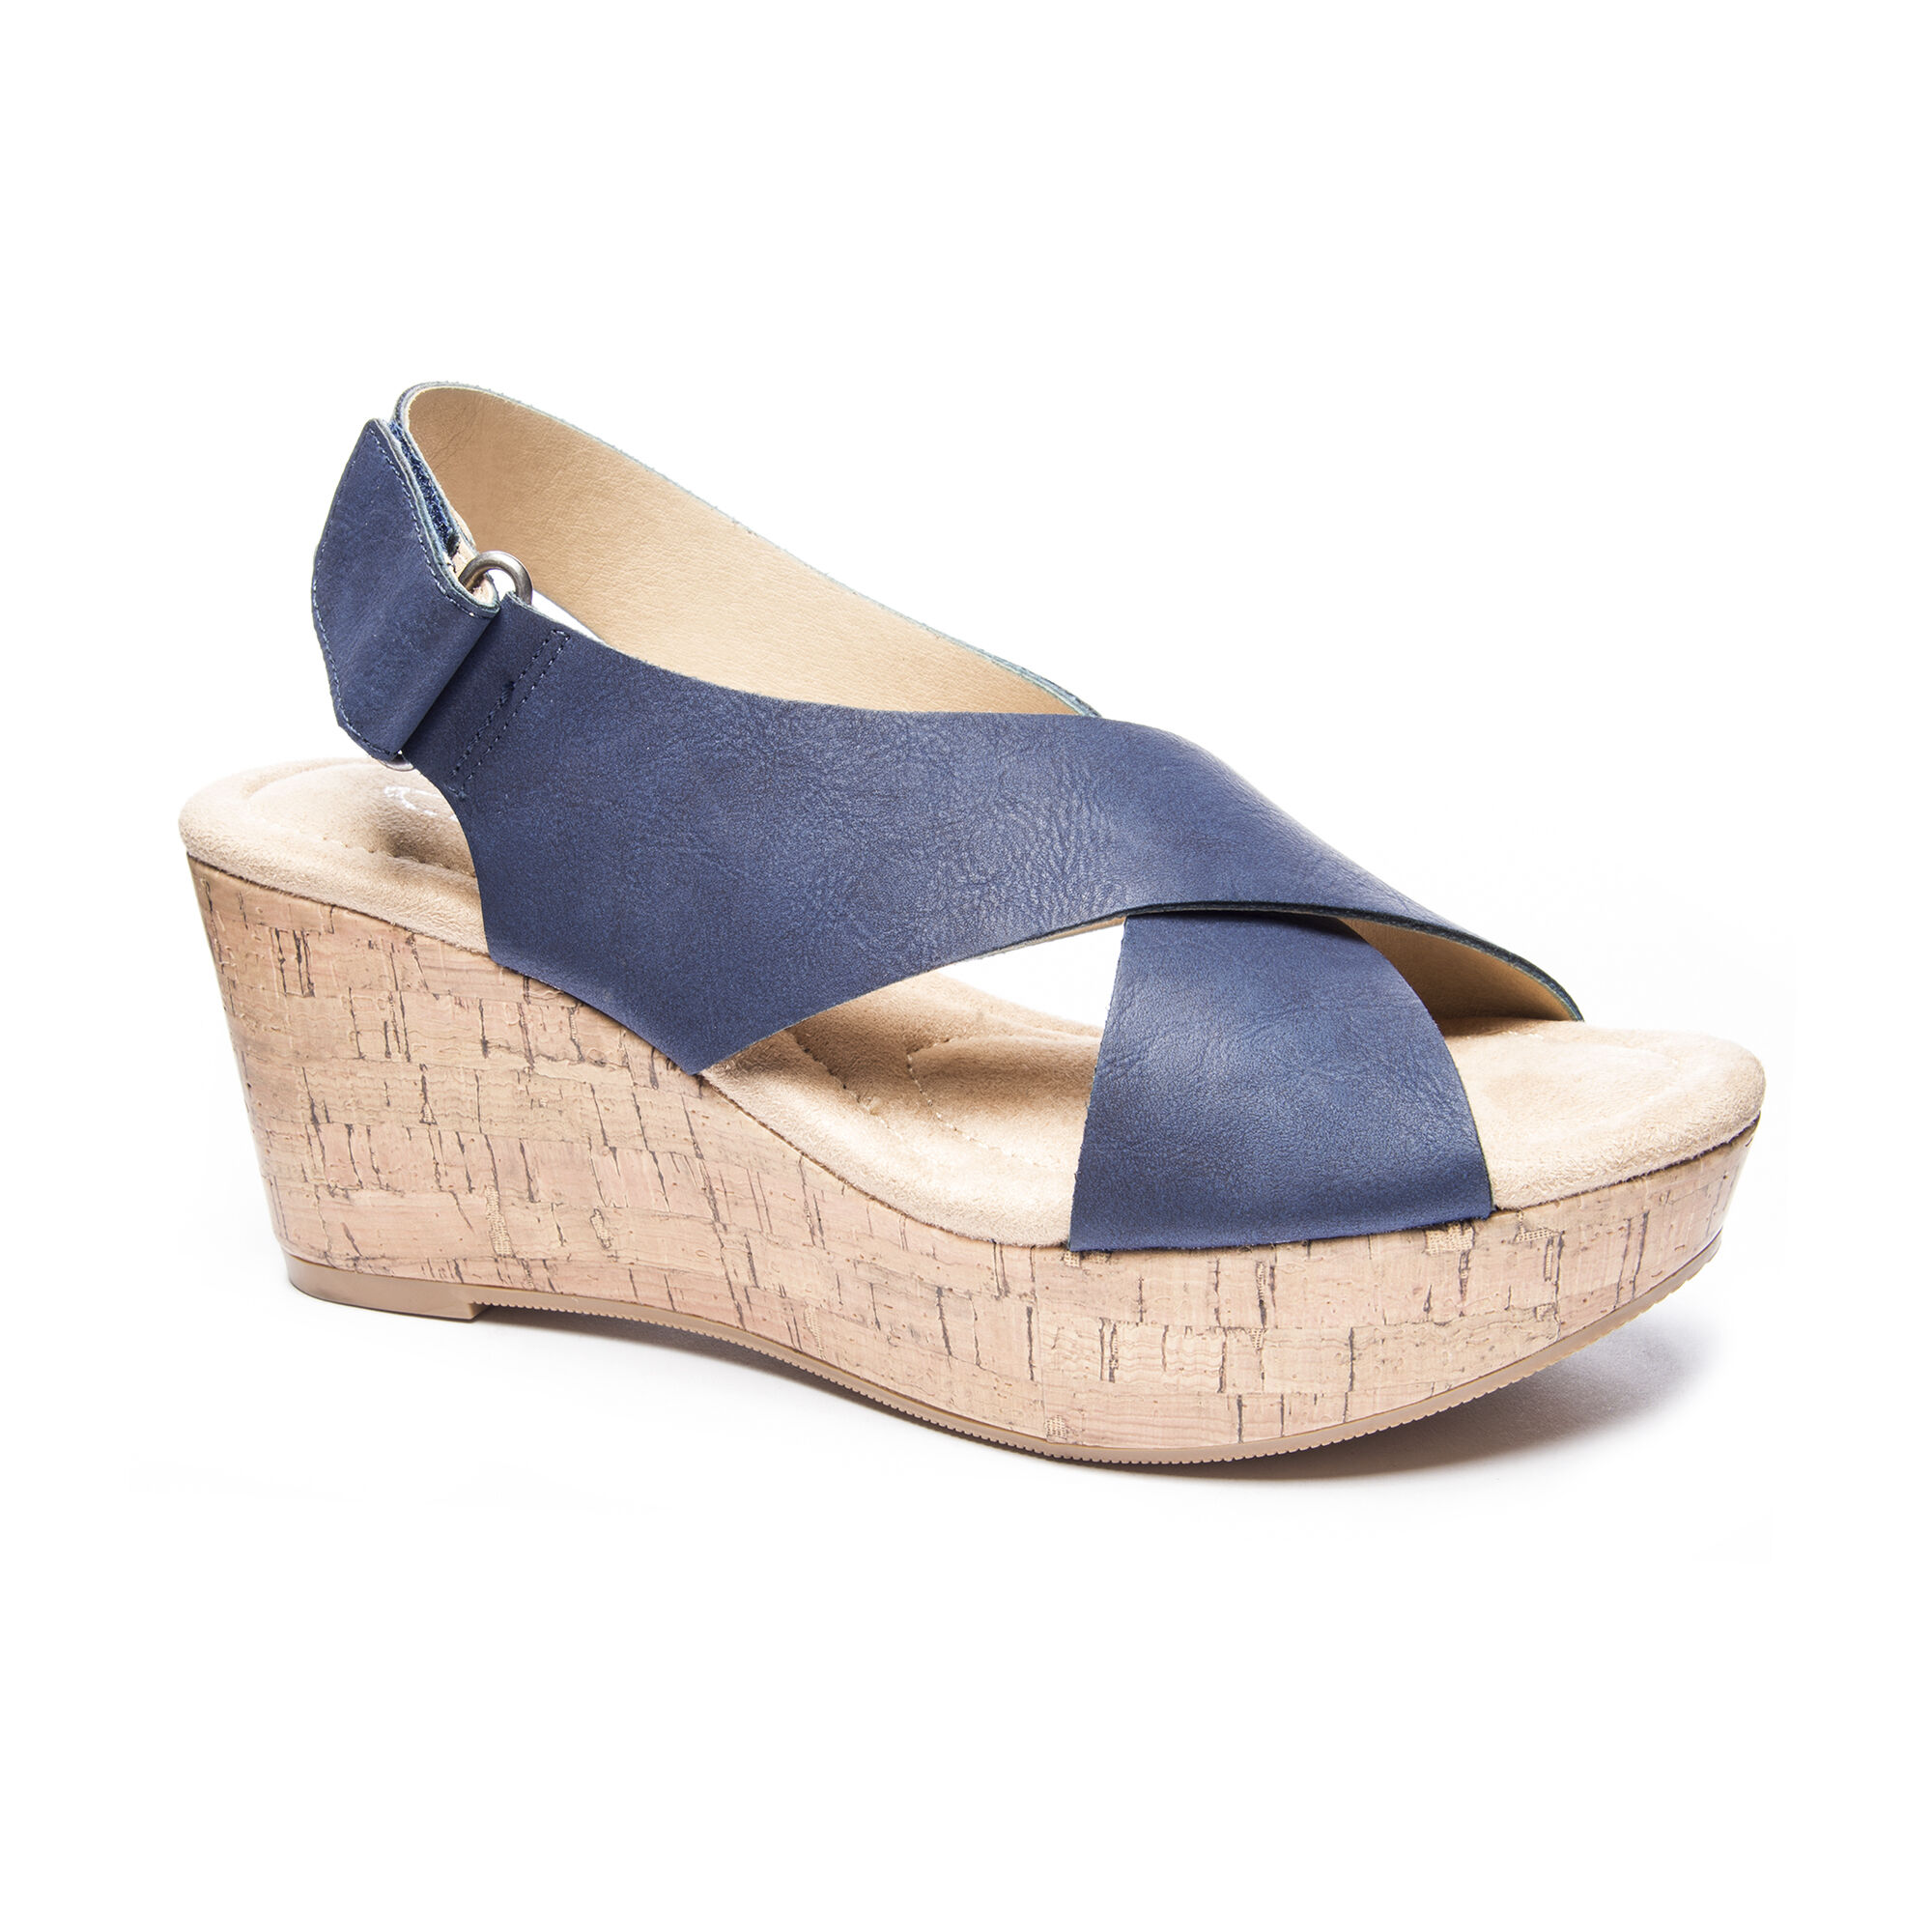 379ccd1e3a CL by Laundry Dream Girl Cork Wedge Sandal